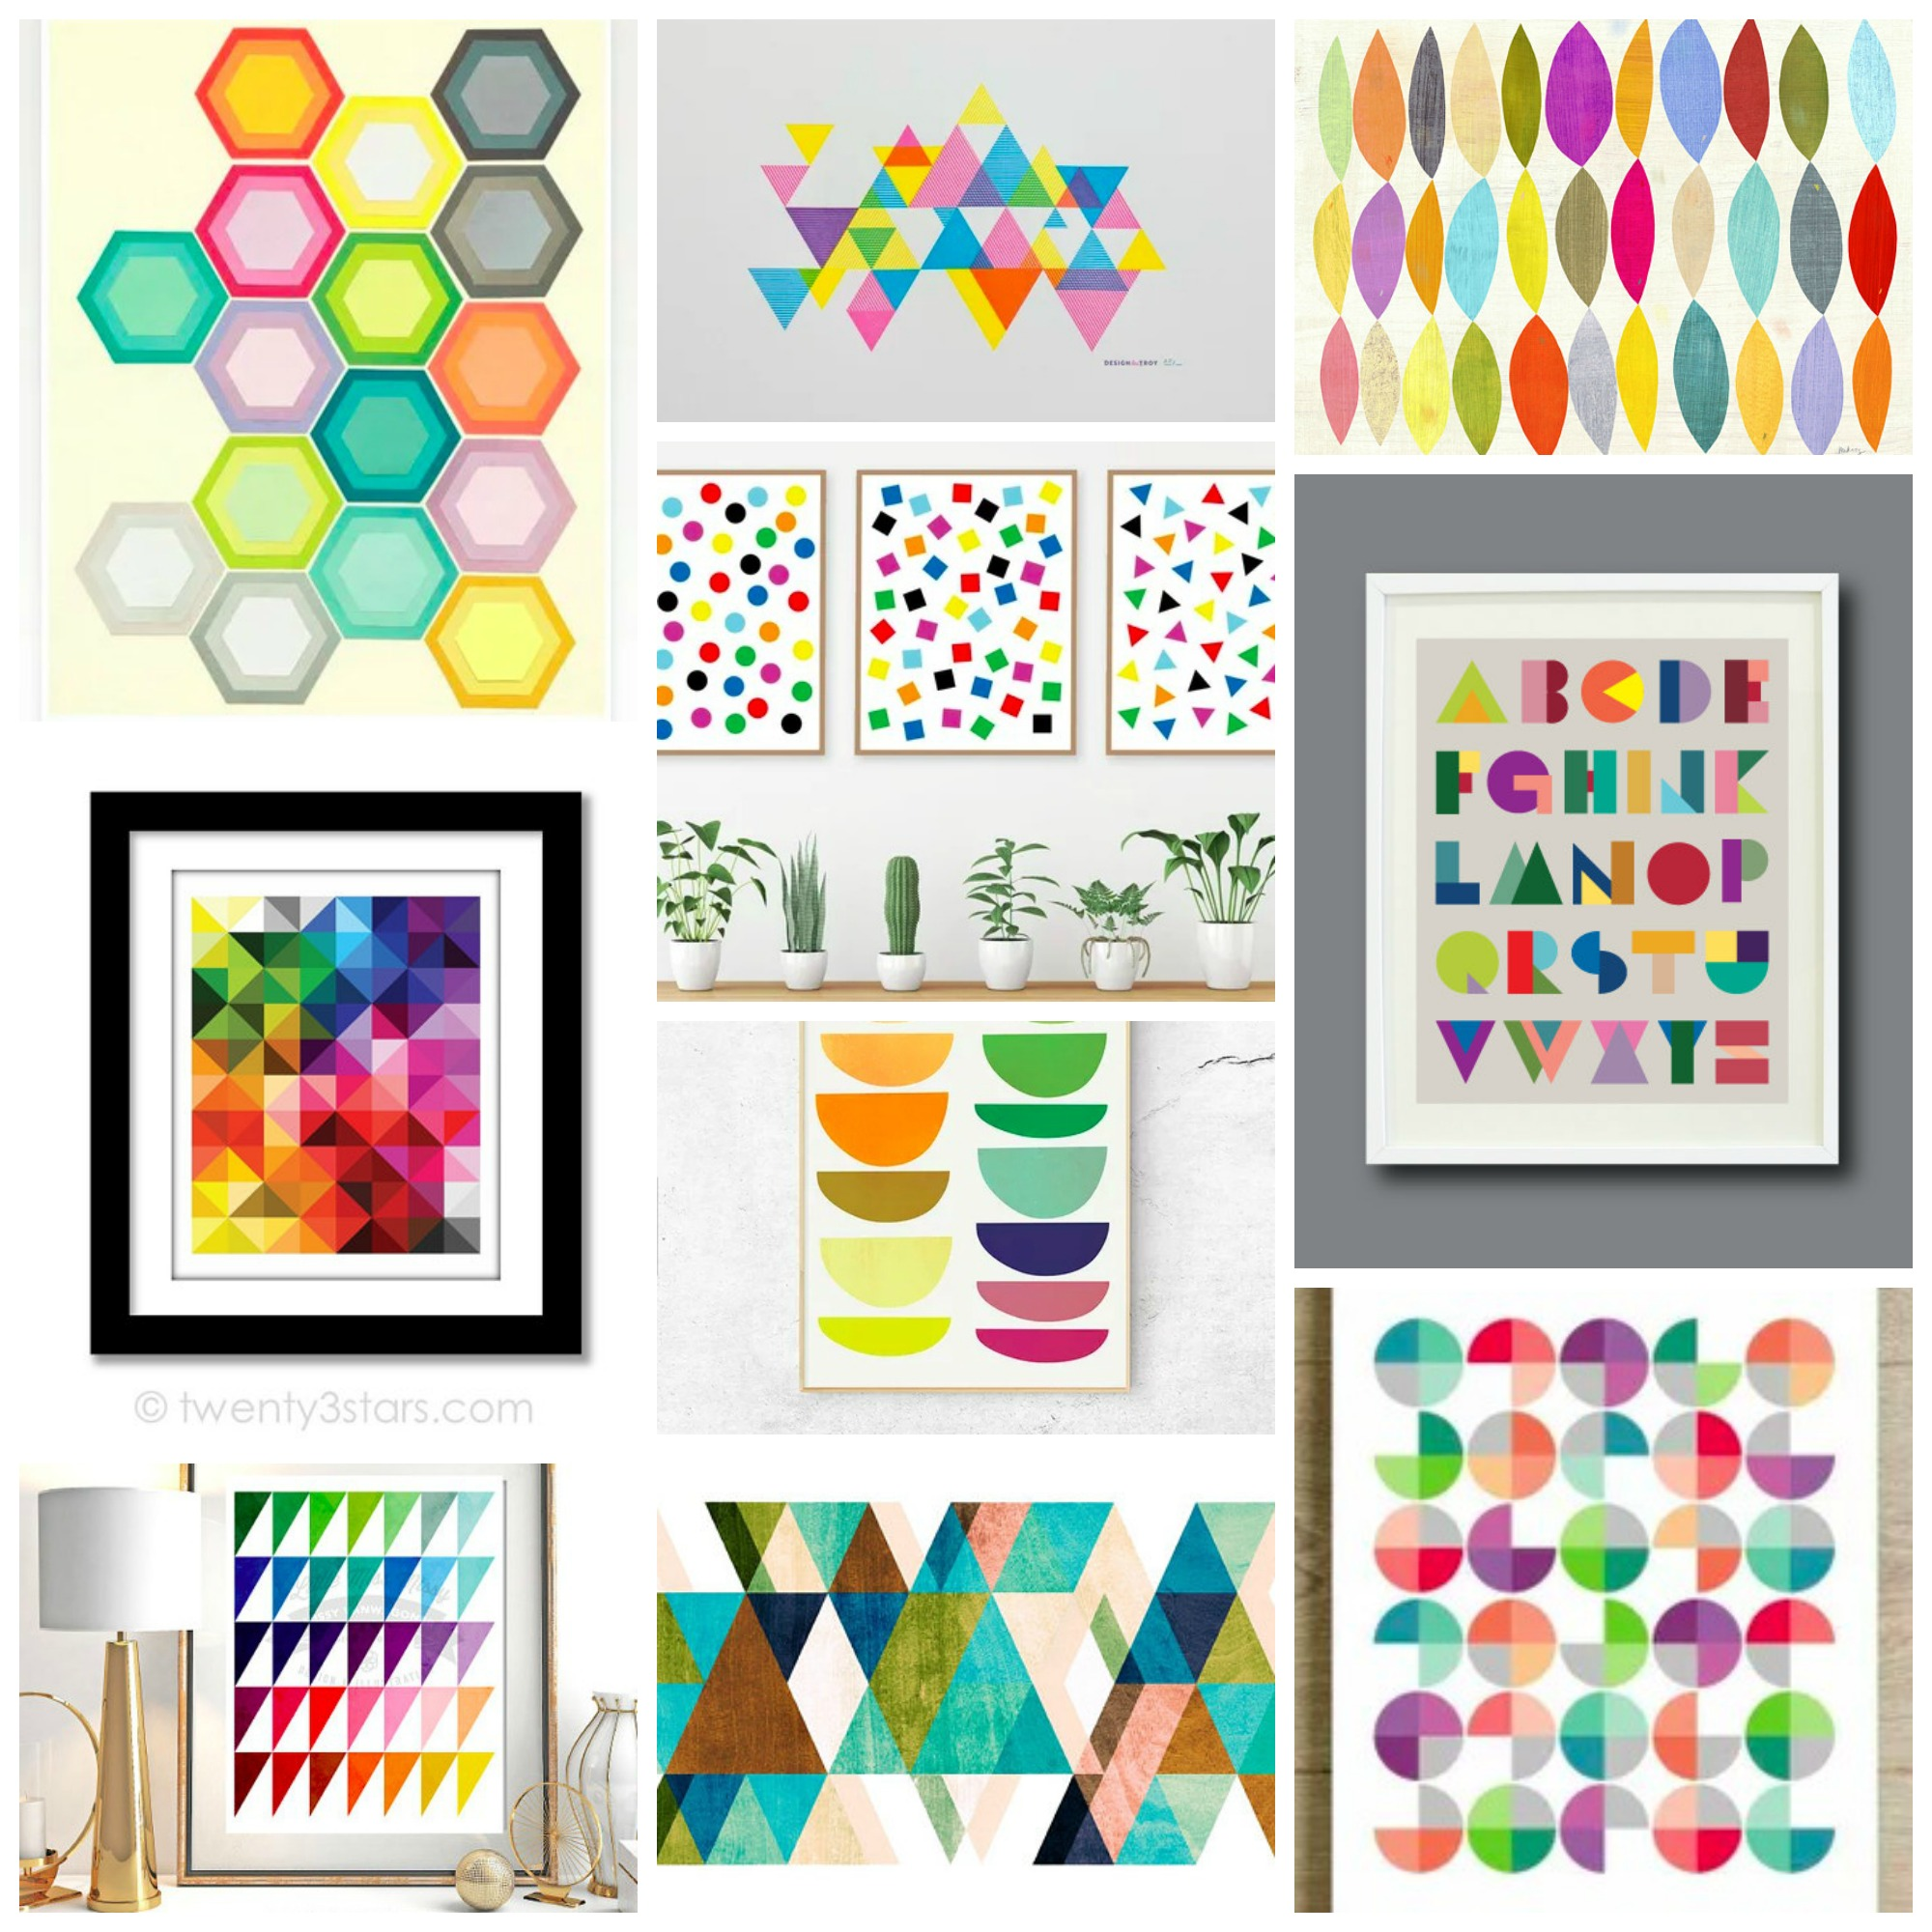 Top 10: Abstract Geometric Art For Your Home, The Most Colorful, Bold and Unique Pieces from Etsy